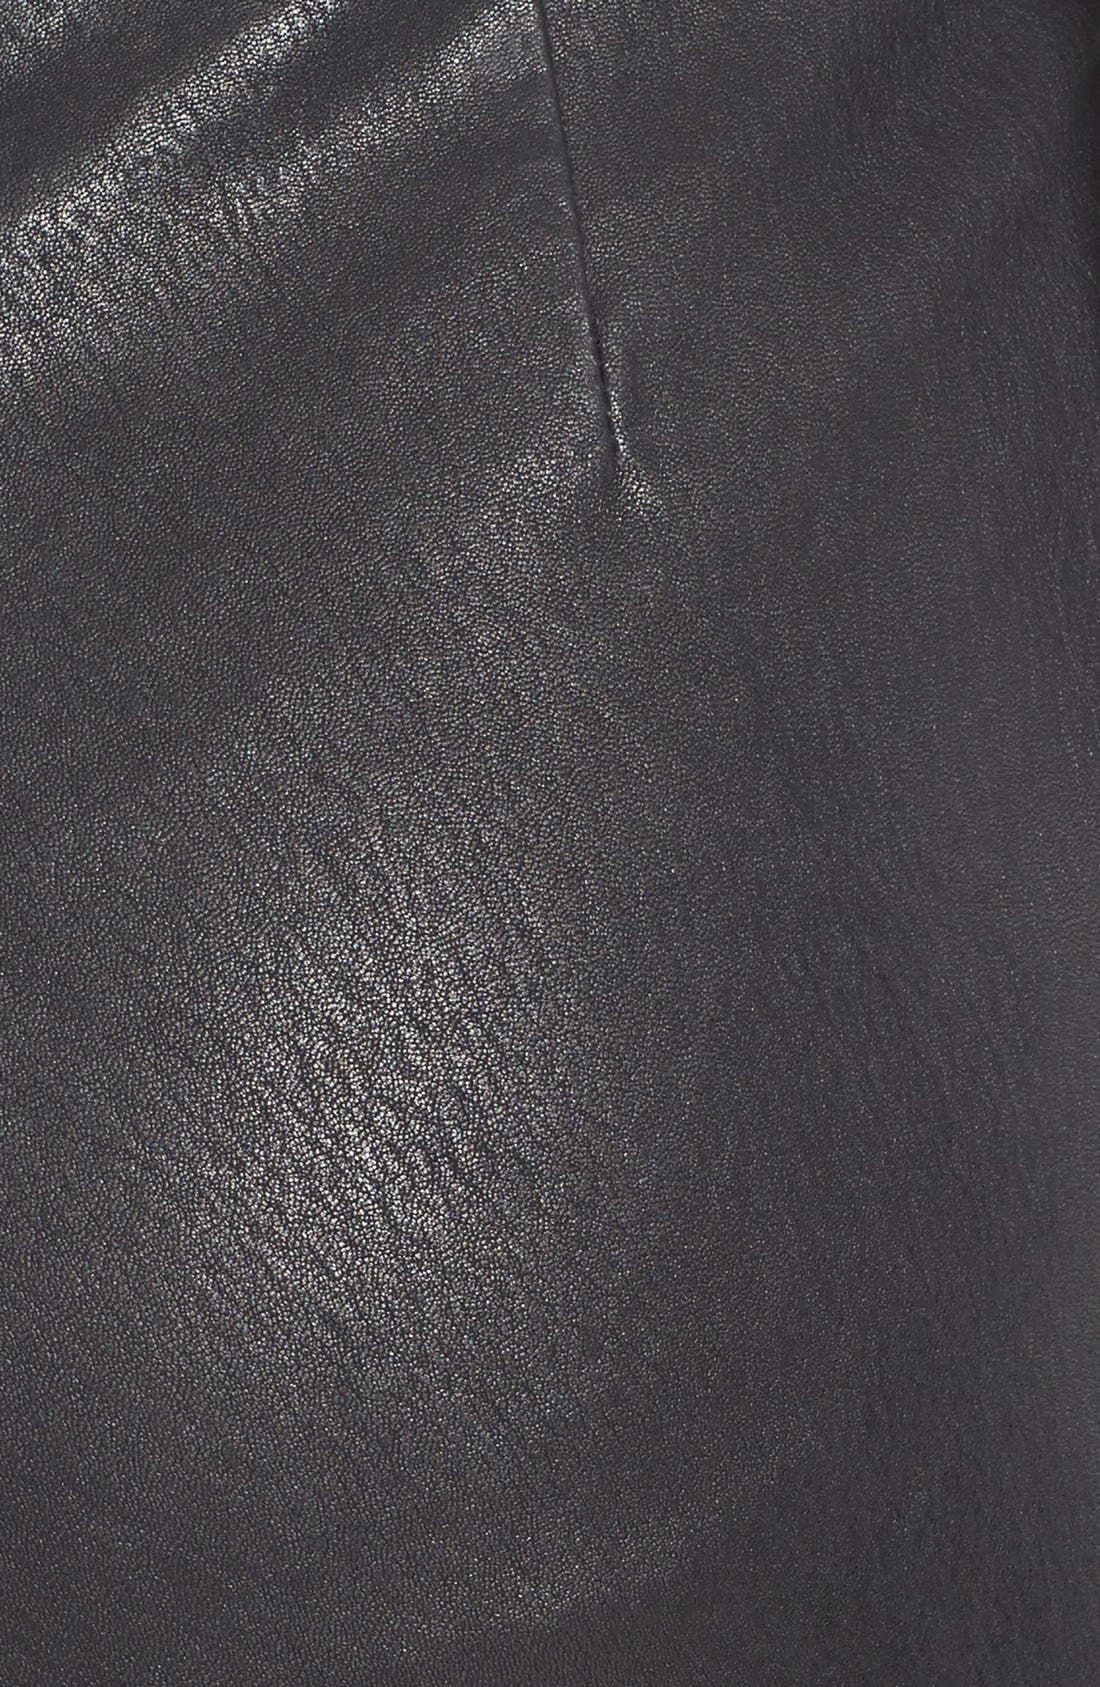 Alternate Image 3  - Theory 'Redell L.' Leather Skinny Pants